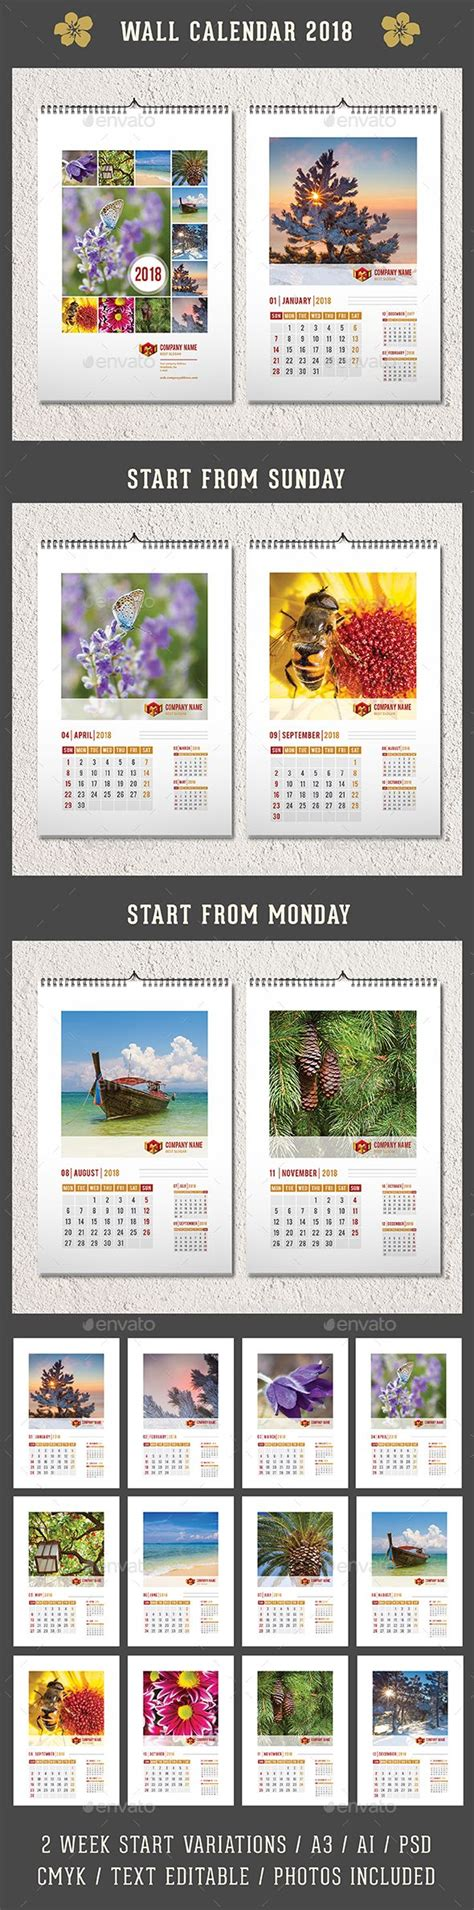 25 best ideas about calendar 2018 on pinterest free